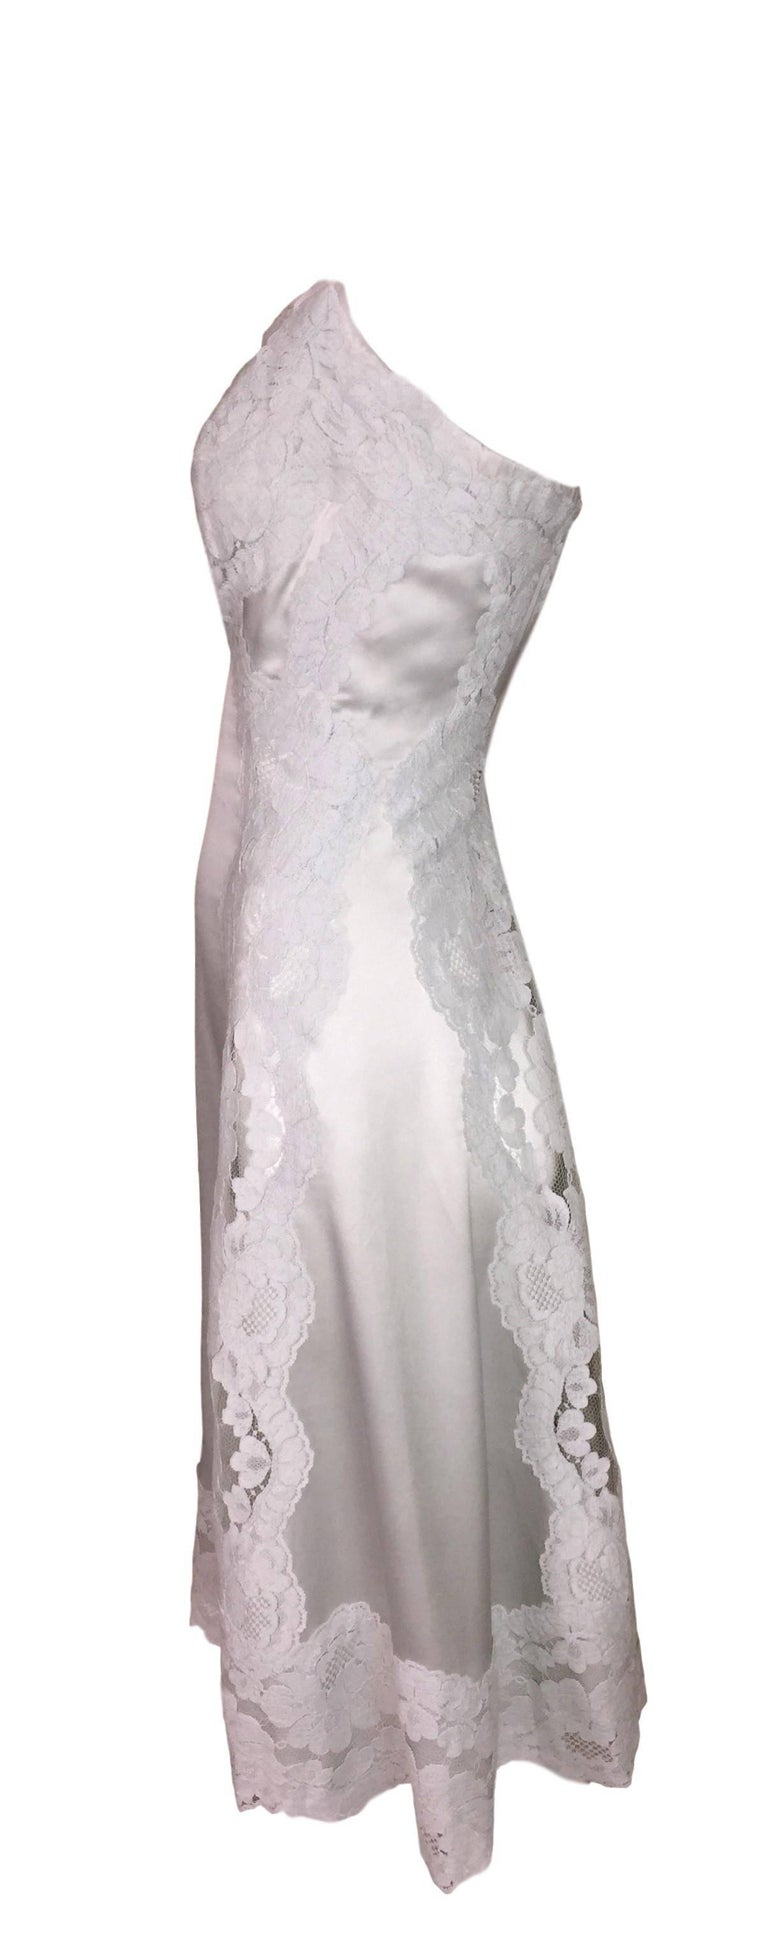 F/W 2015 Dolce & Gabbana Haute Couture Alta Moda OOAK Sheer Lace Slip Dress 2